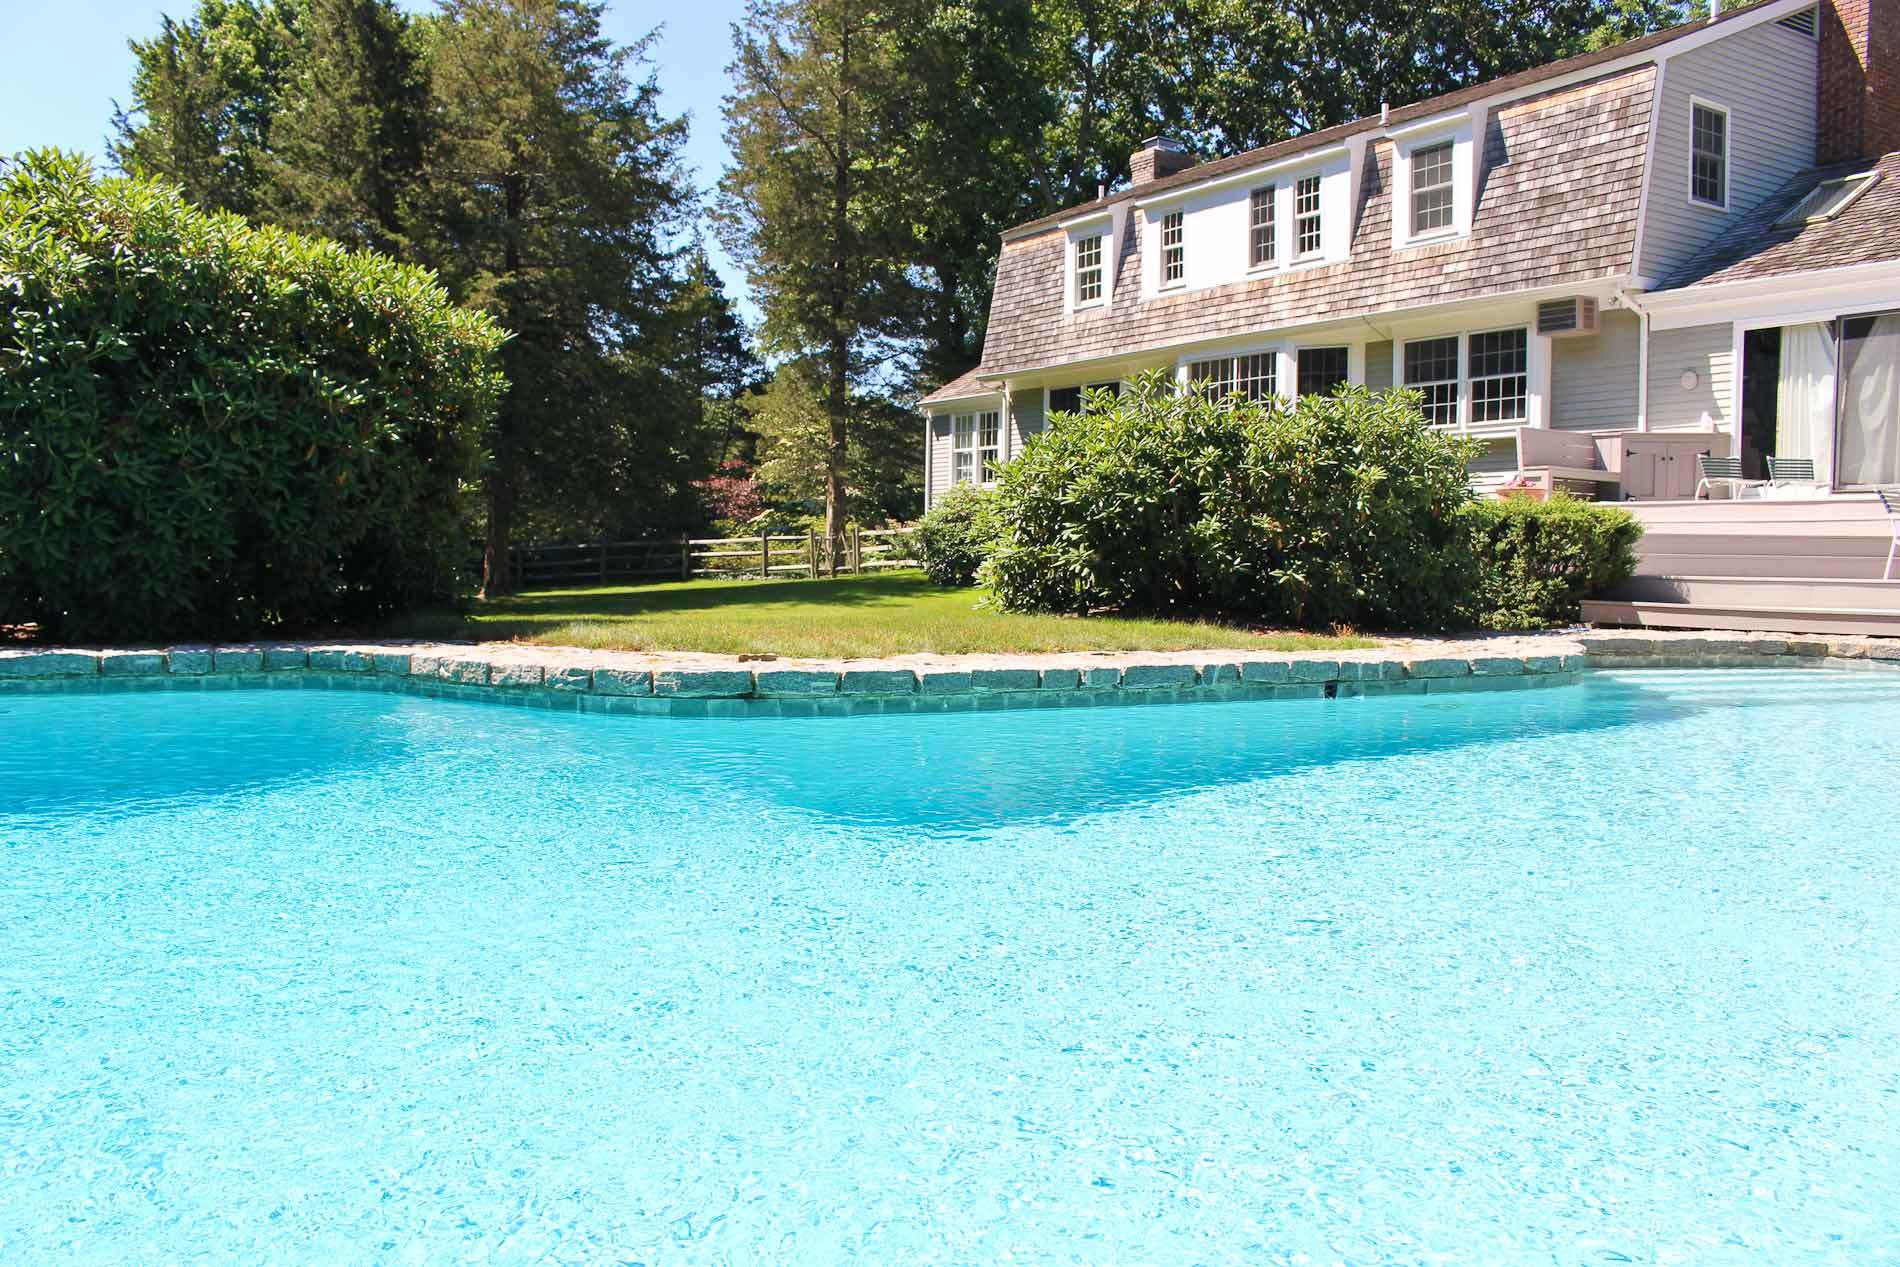 Homes With Swimming Pool For Sale In Danbury Ct Find And Buy Houses With Pool Dagnys Real Estate